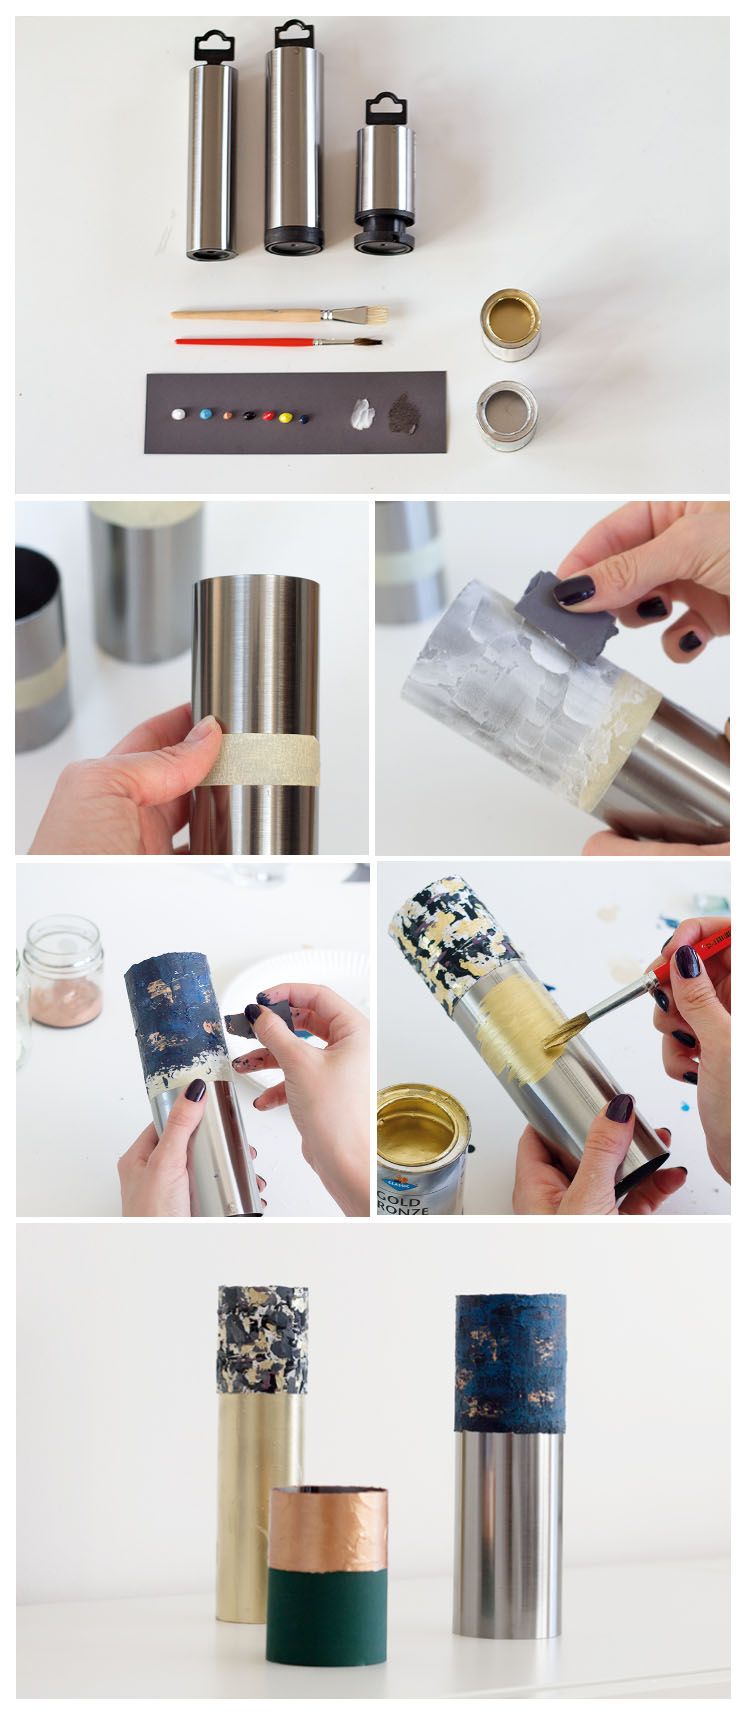 DIY metal tube vases with acryl colors and metal tubes in copper, gold and silver